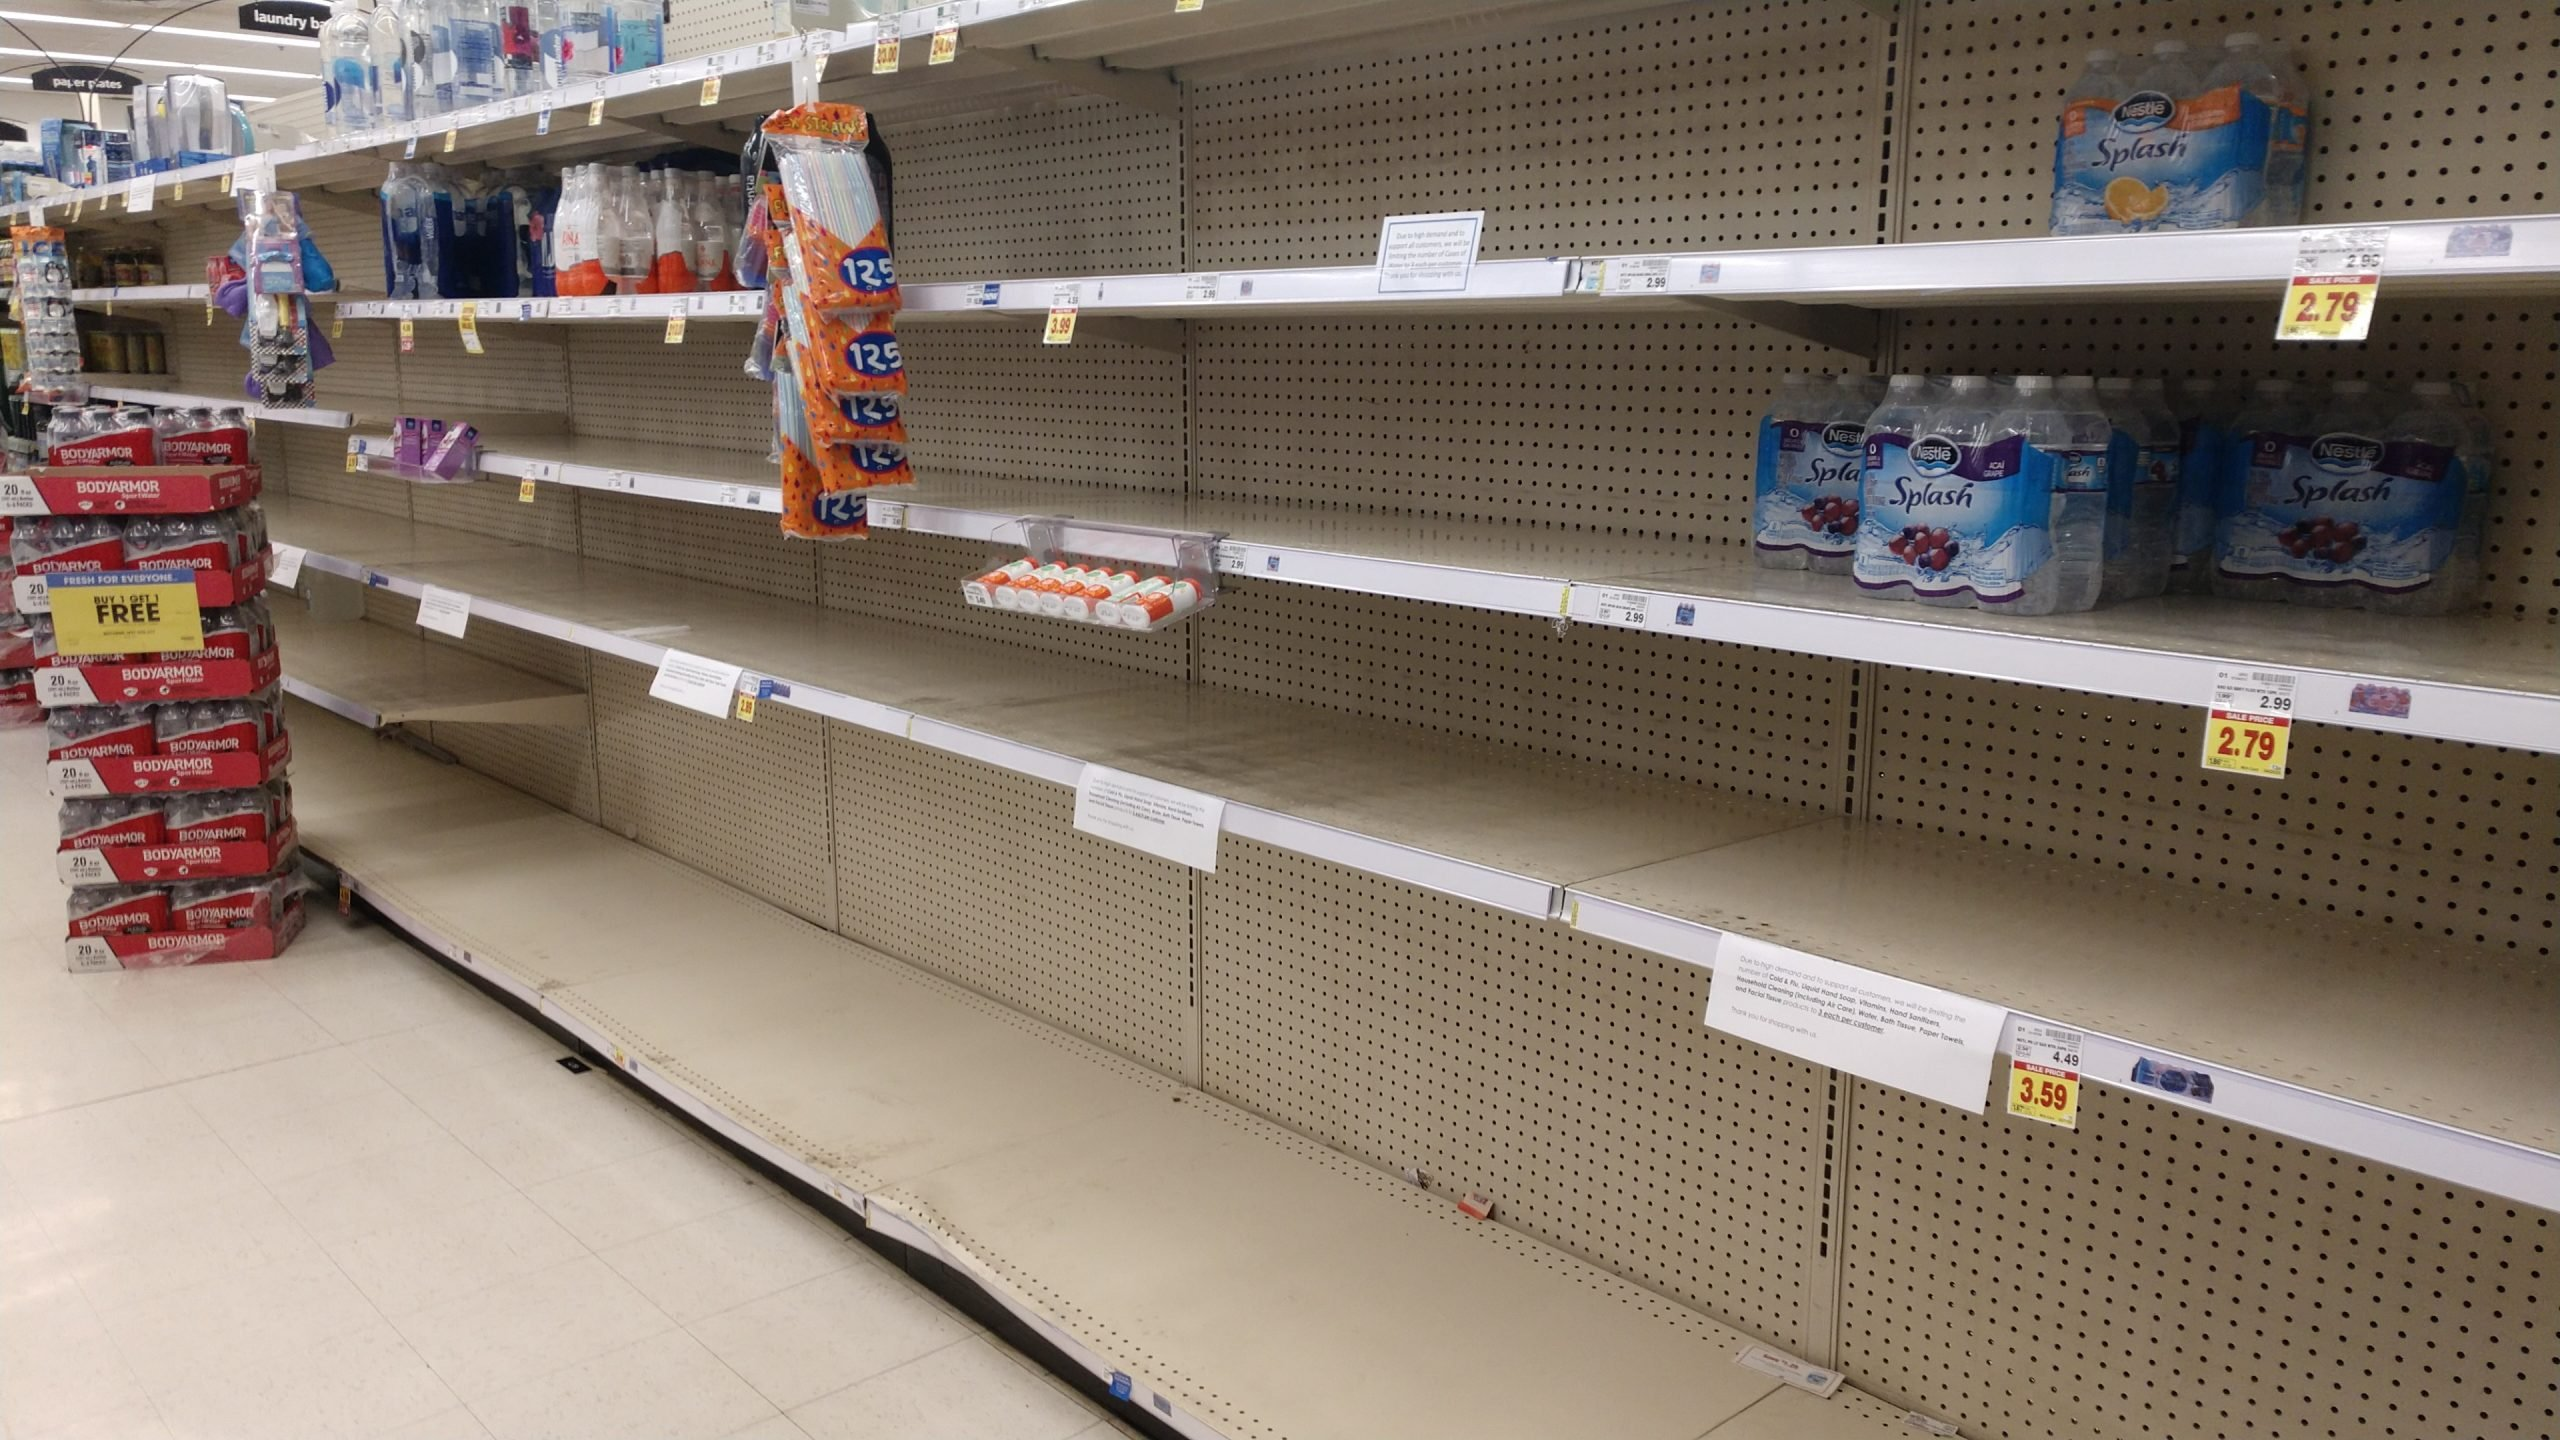 The pandemic left a lot of retailers out-of-stock on many items